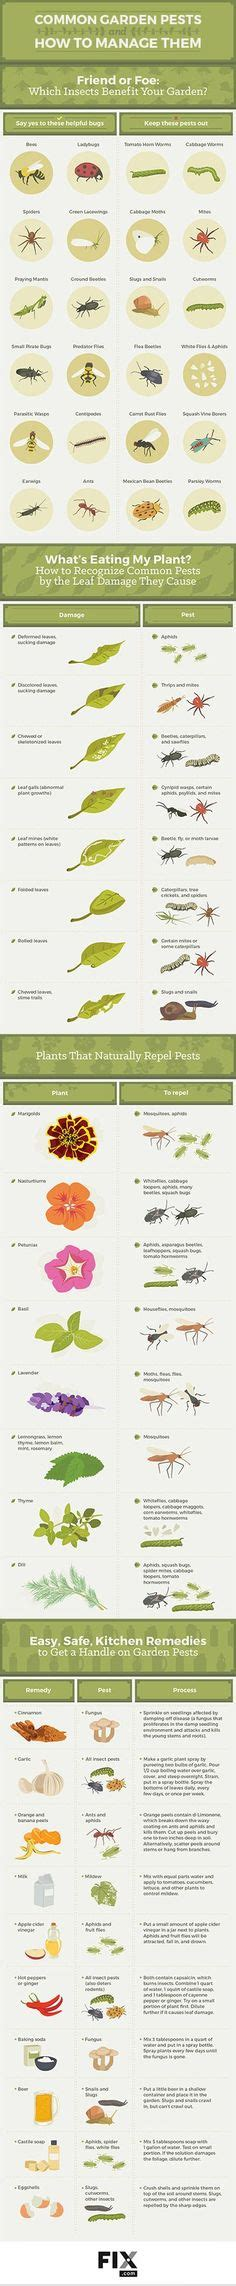 gardening cheat sheets the garden glove 1000 images about green thumb on pinterest garden paths